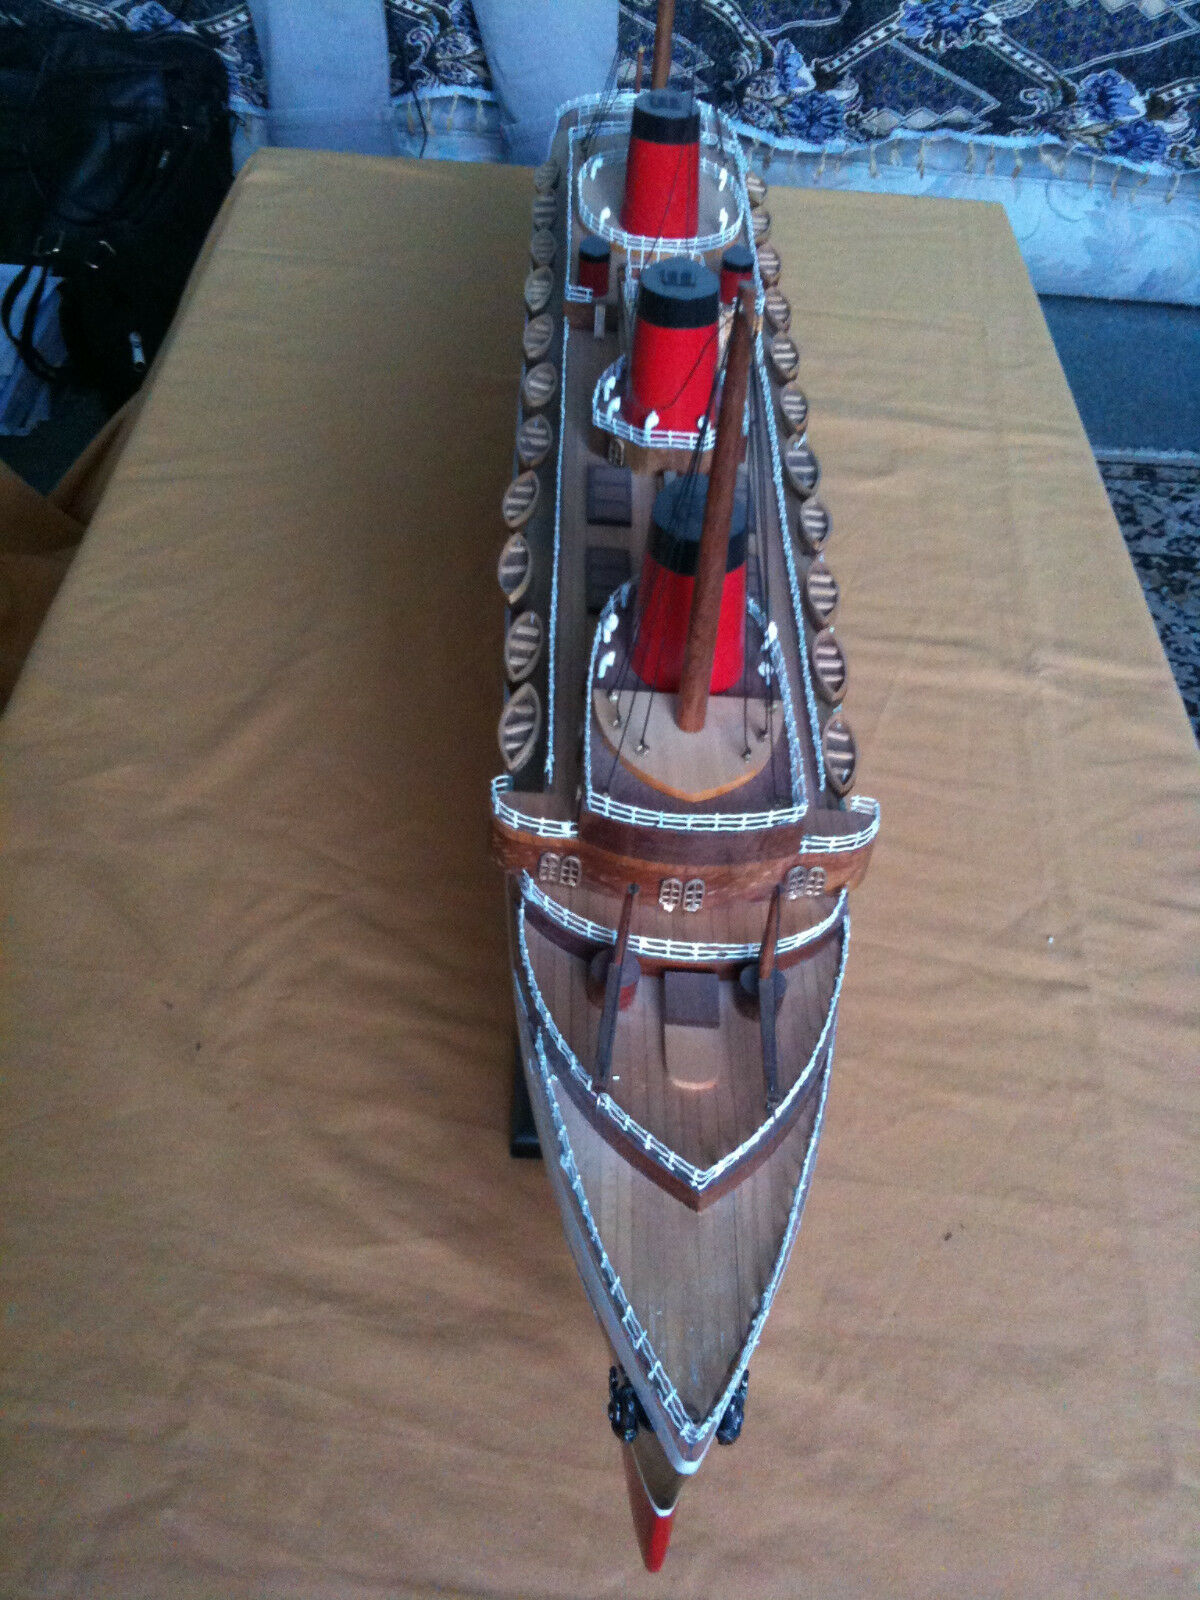 BRAND NEW 32 inch FULL SCALE MODEL IN WOOD, HAND BUILT SHIP THE NORMANDY BOXED